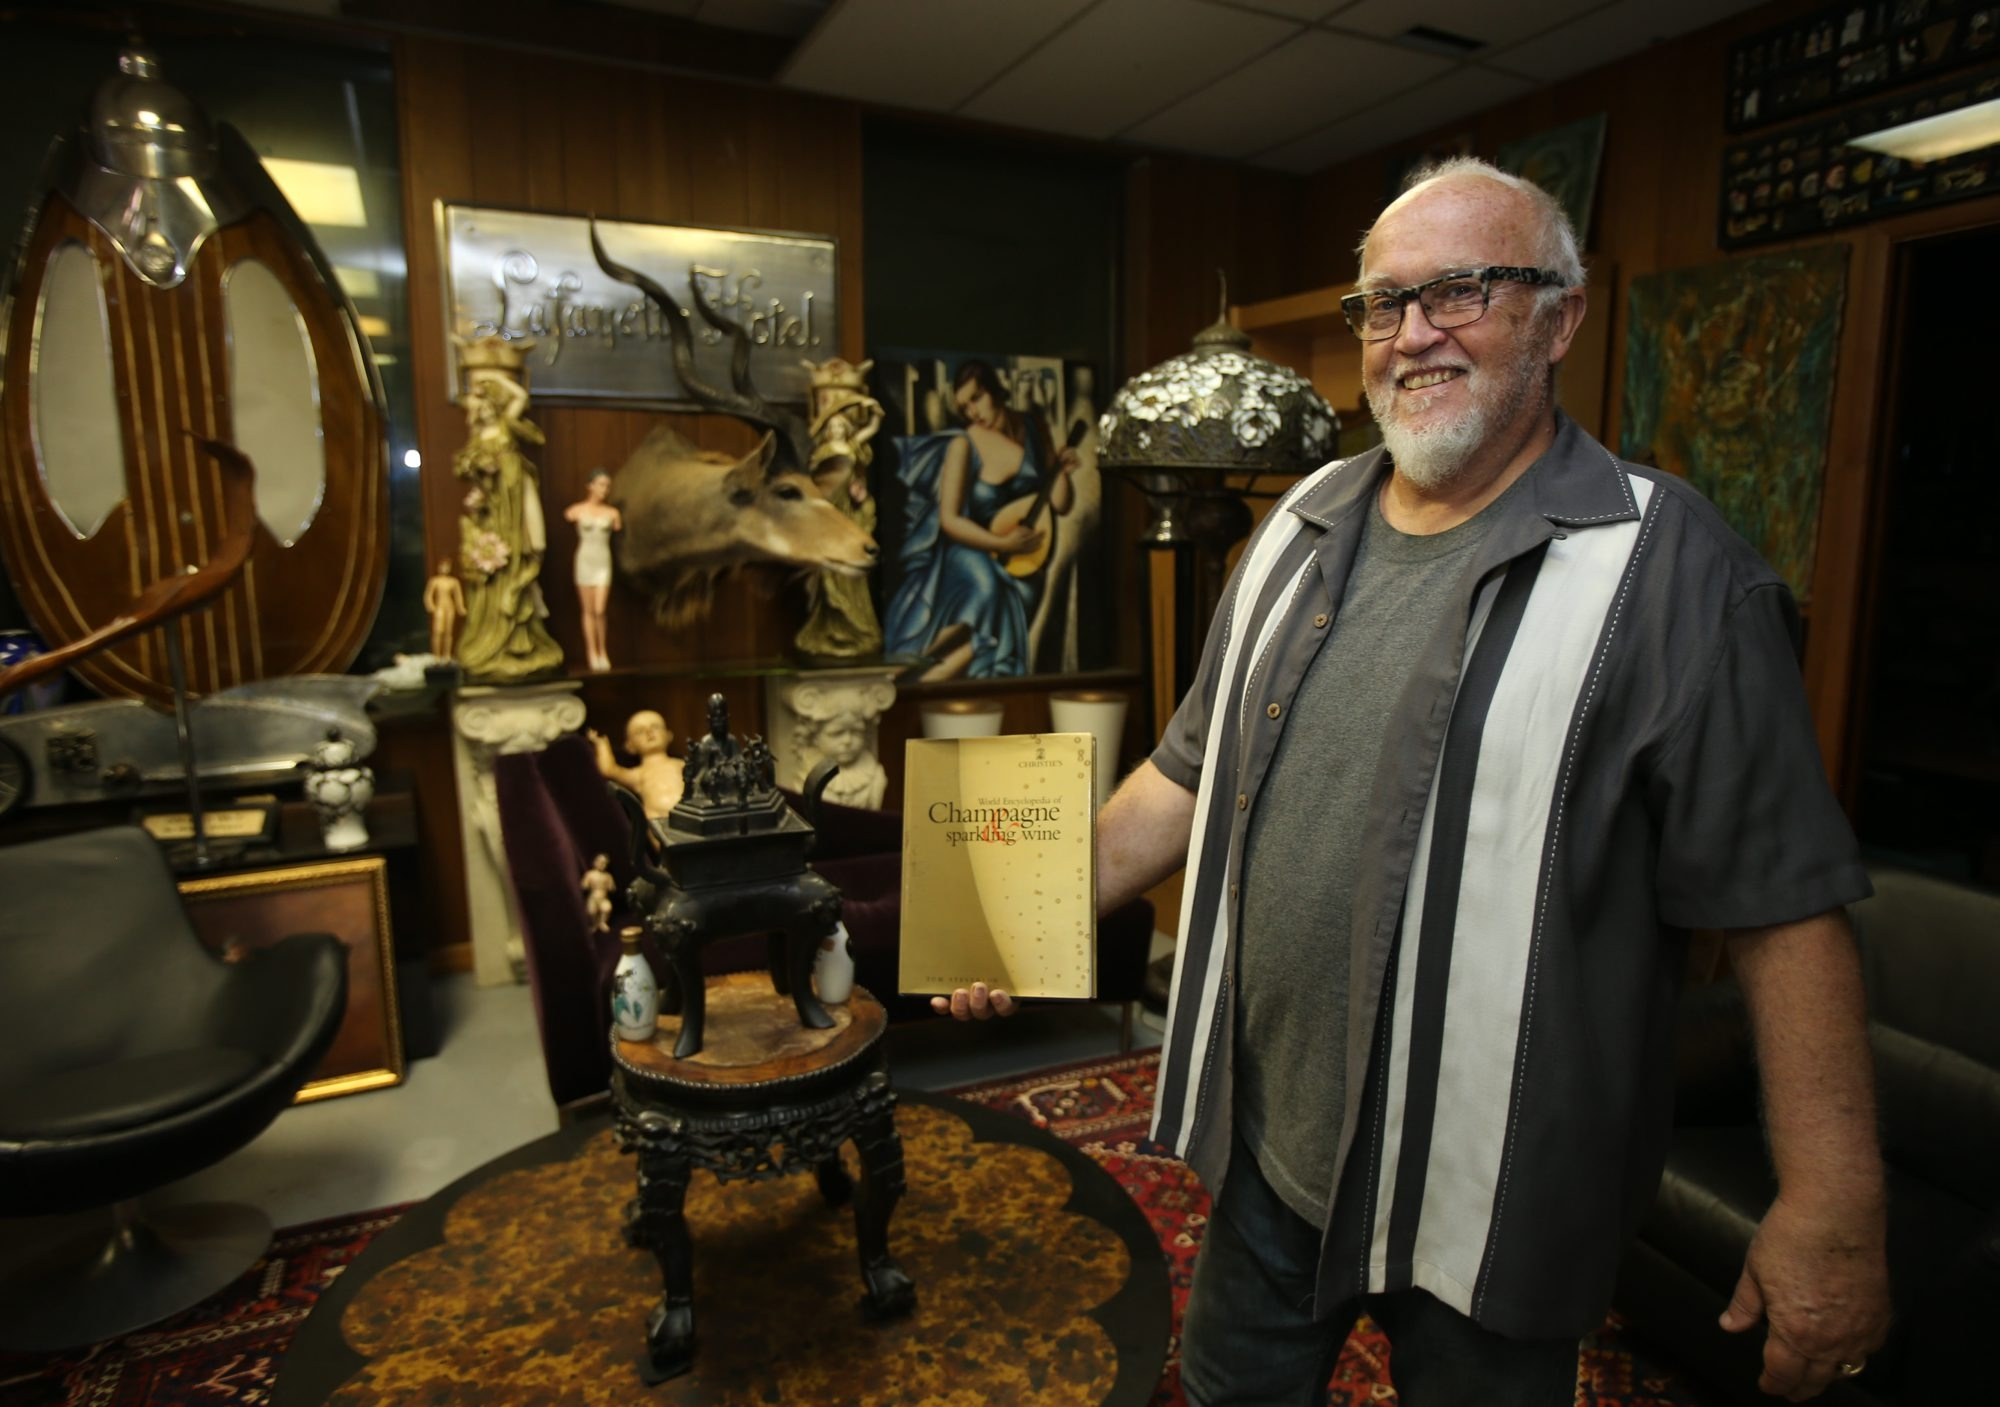 Hank Sontag, owner of Horsefeathers Architectural Antiques and Hollywood Hank's, stands amid the antique furniture and vintage memorabilia inside the store's champagne lounge.